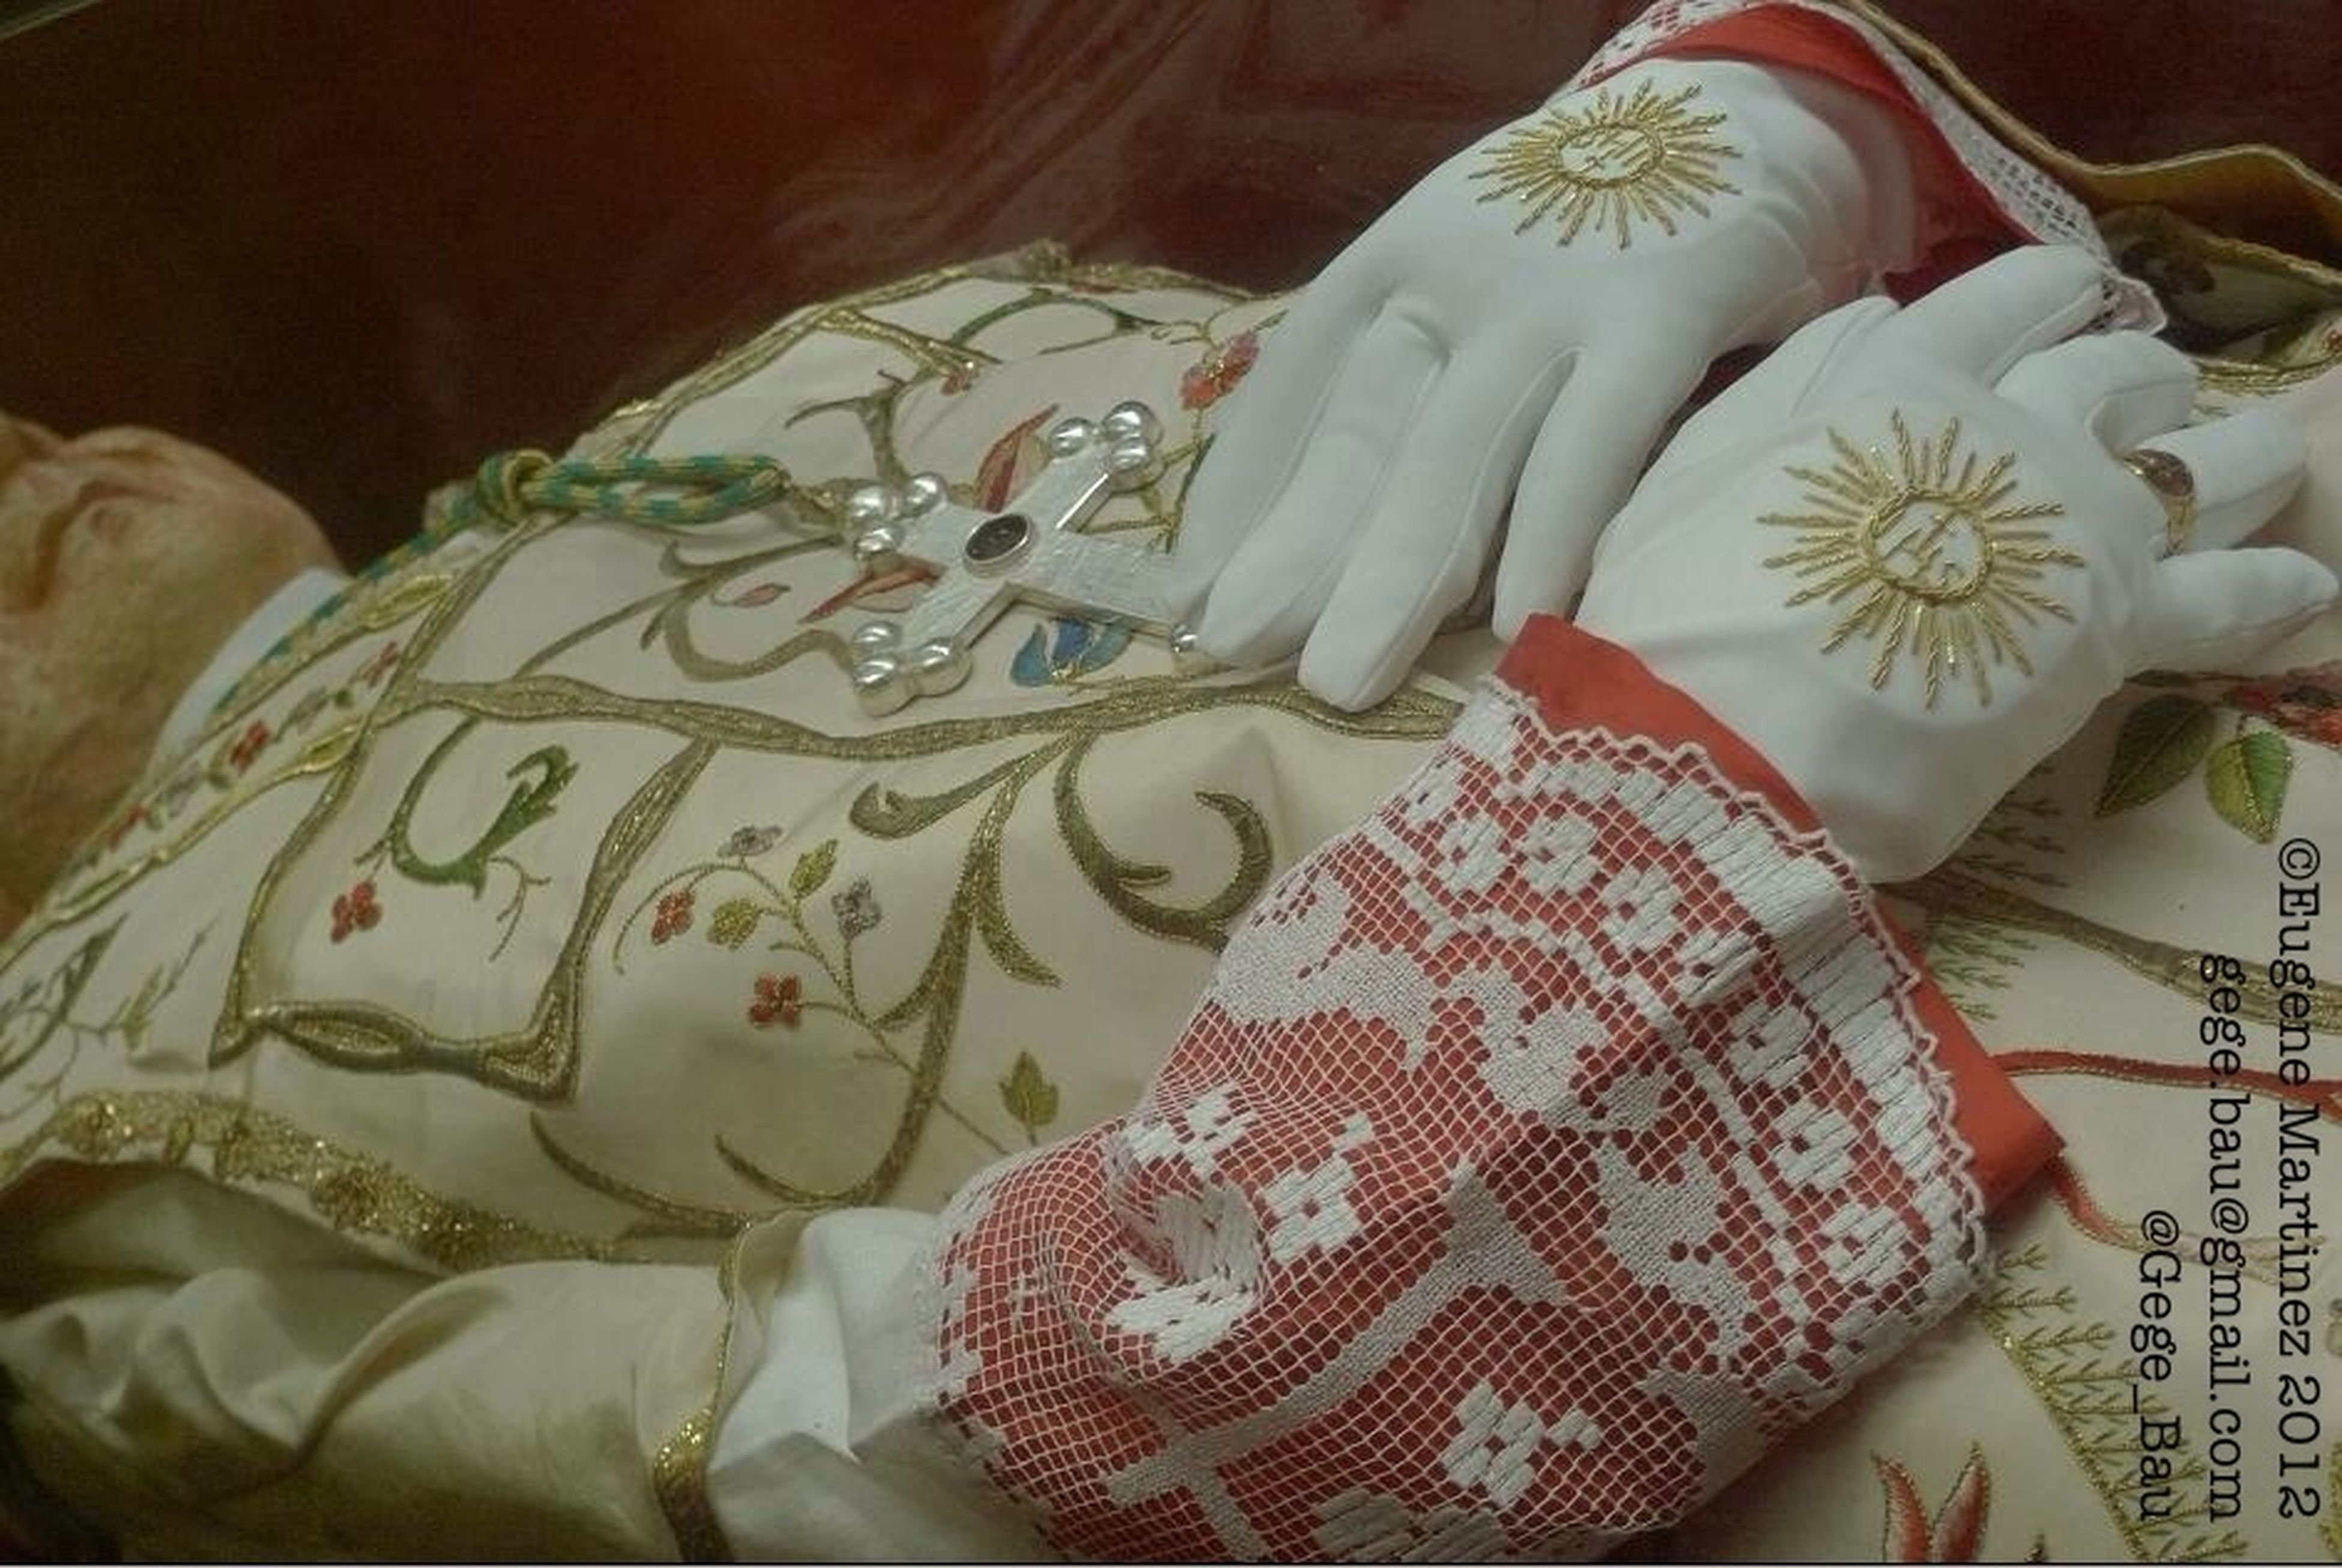 indoors, bed, home interior, art and craft, art, creativity, high angle view, fabric, floral pattern, close-up, pillow, textile, human representation, white color, bedroom, still life, design, tradition, blanket, sofa